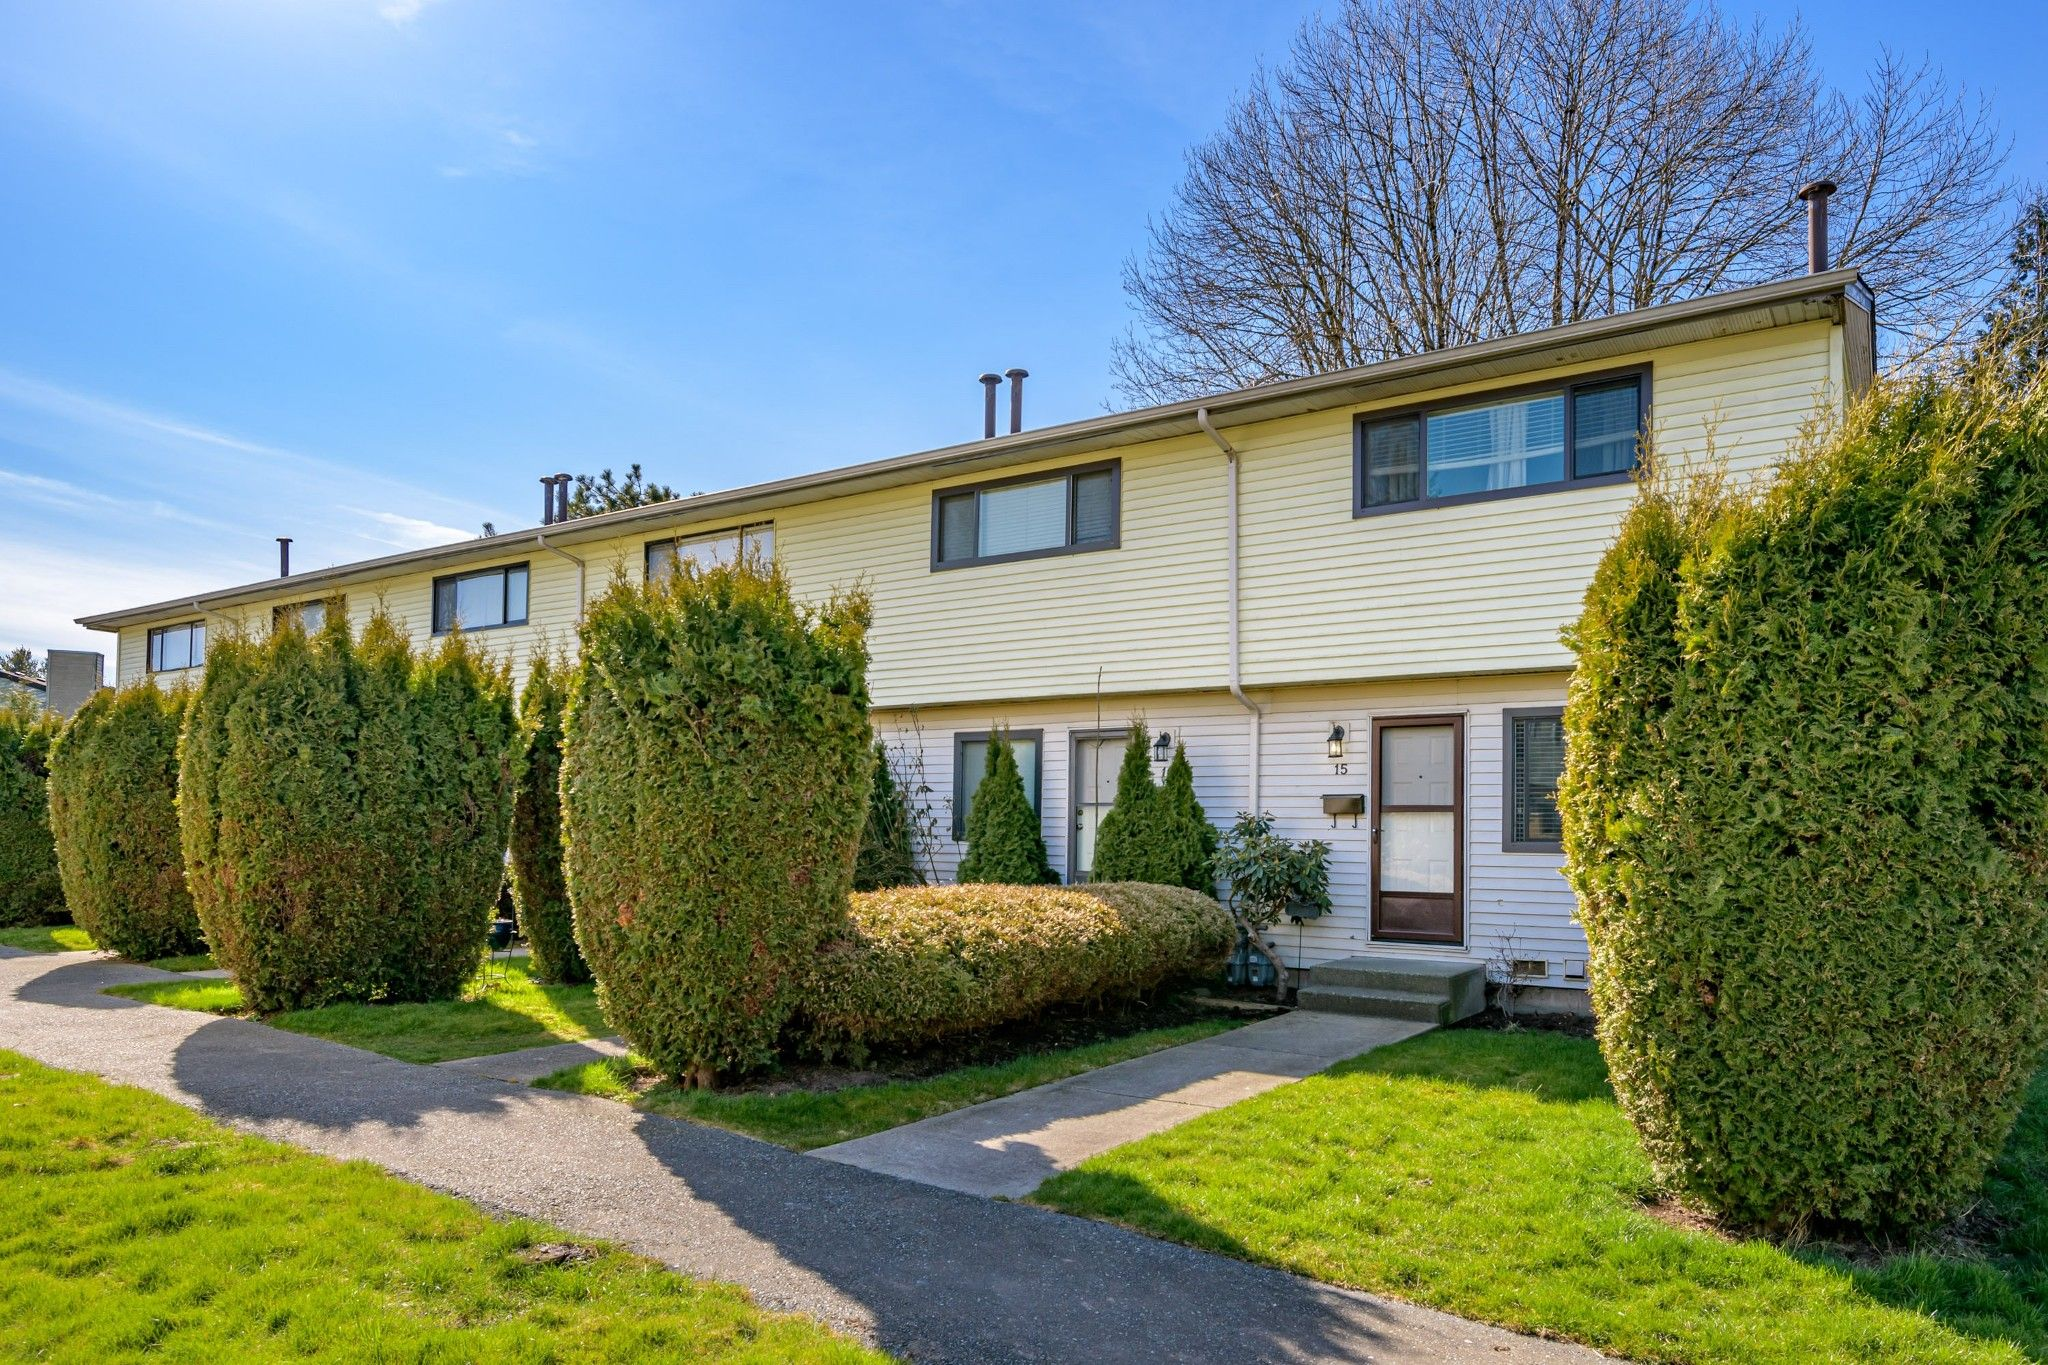 Main Photo: 15 5351 200 Street in Langley: Langley City Townhouse for sale : MLS®# R2550222